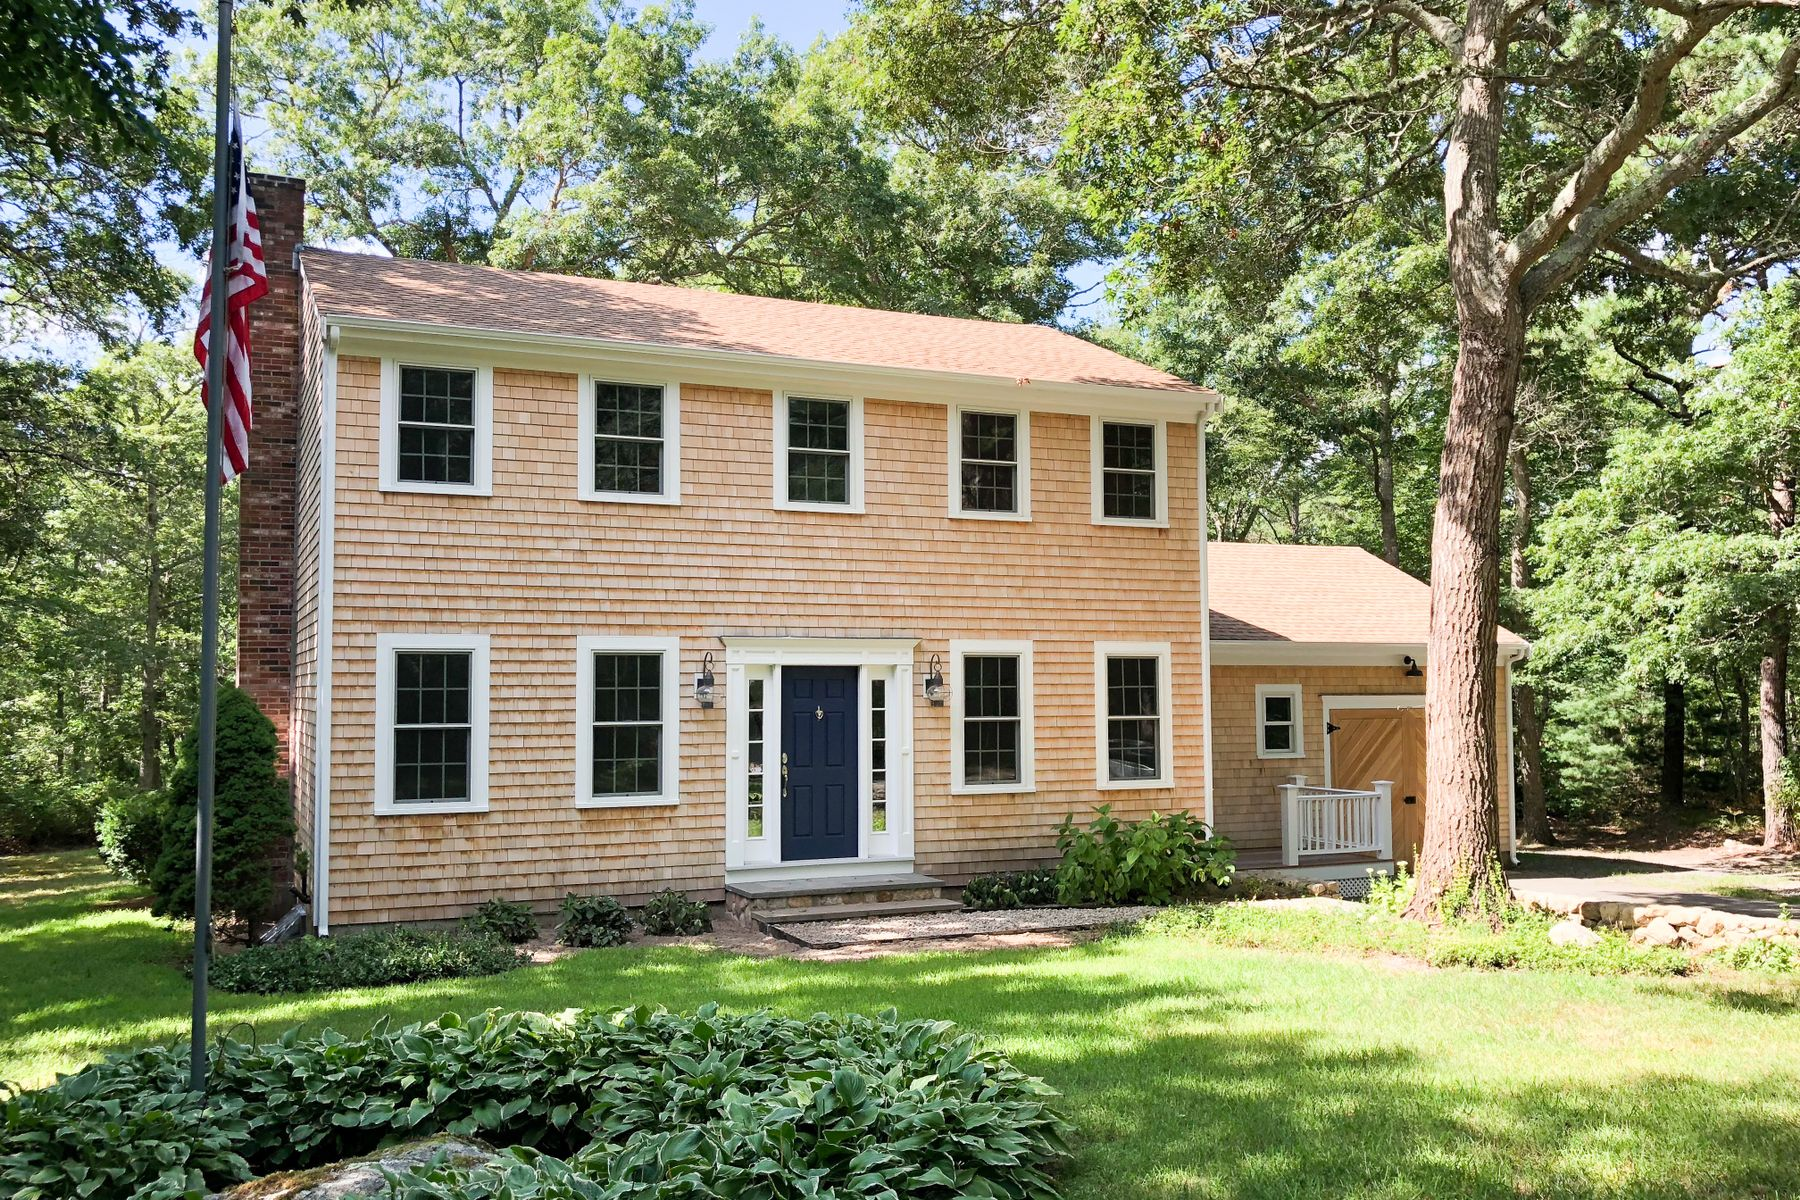 Single Family Home for Active at 6 Bayview Road East Sandwich, Massachusetts 02537 United States